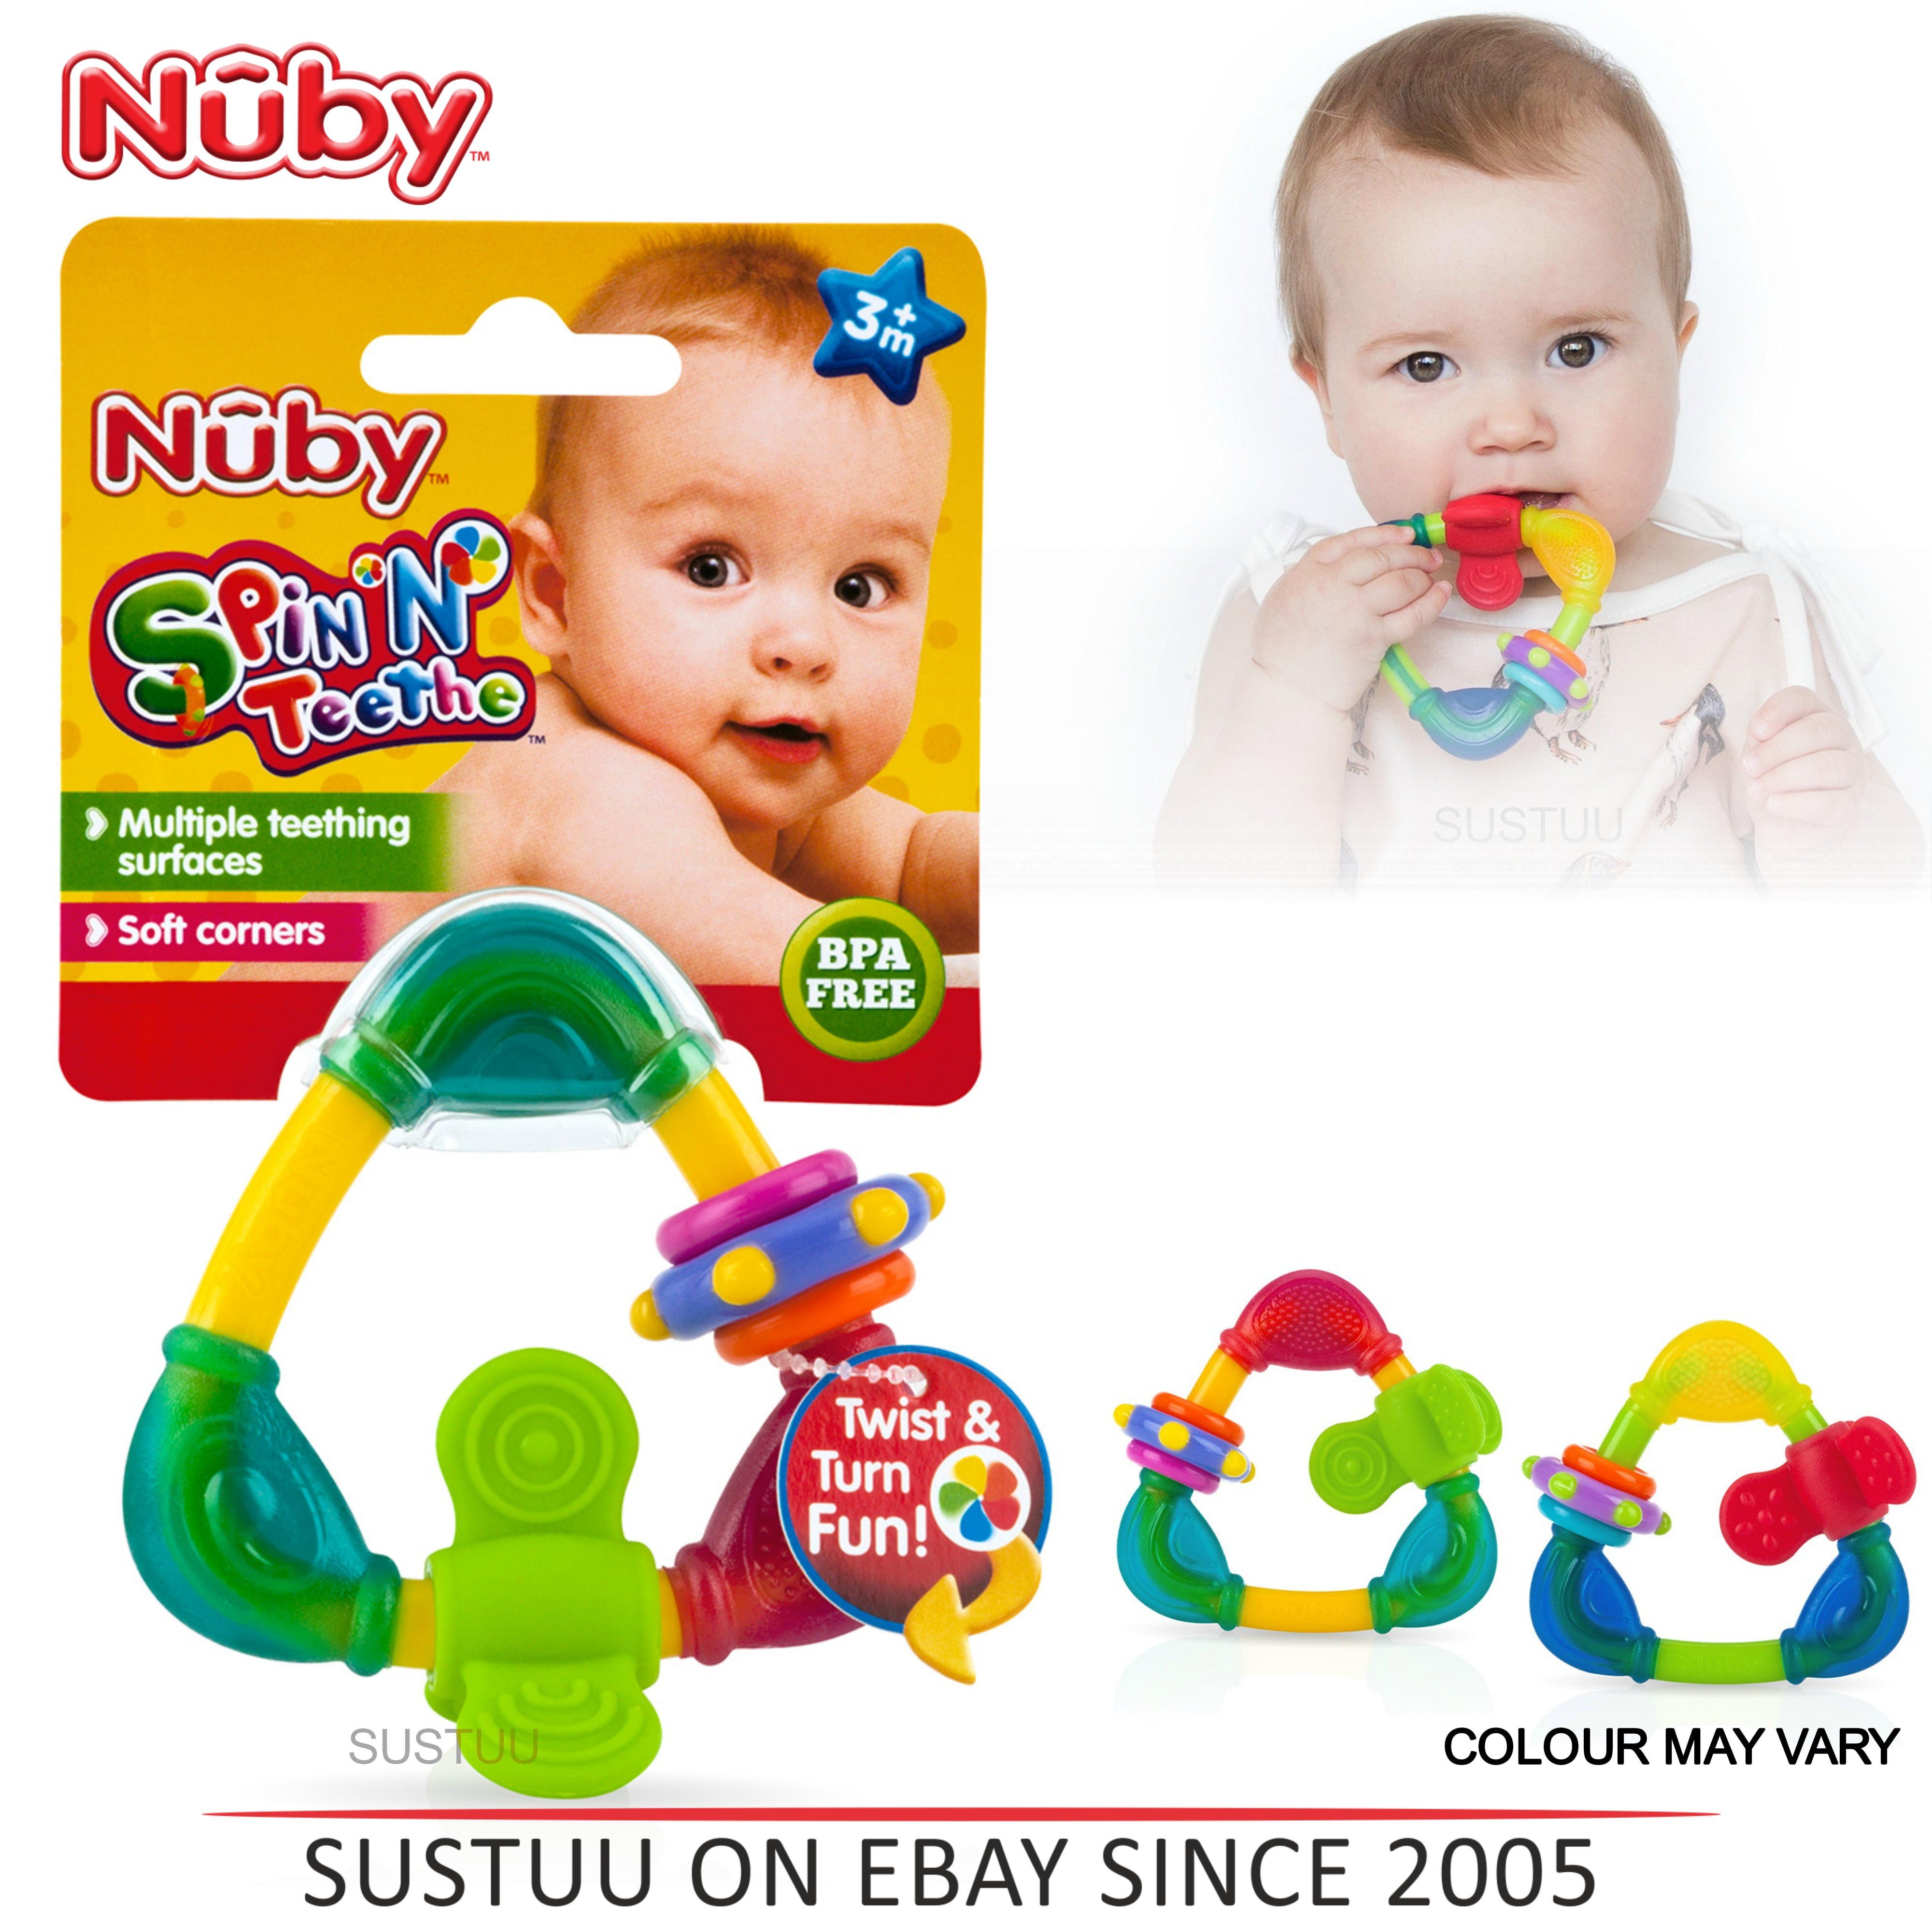 Nuby Spin & Teethe Baby Non-toxic Movable Fun Colourful Teether Infant Toy 3m+